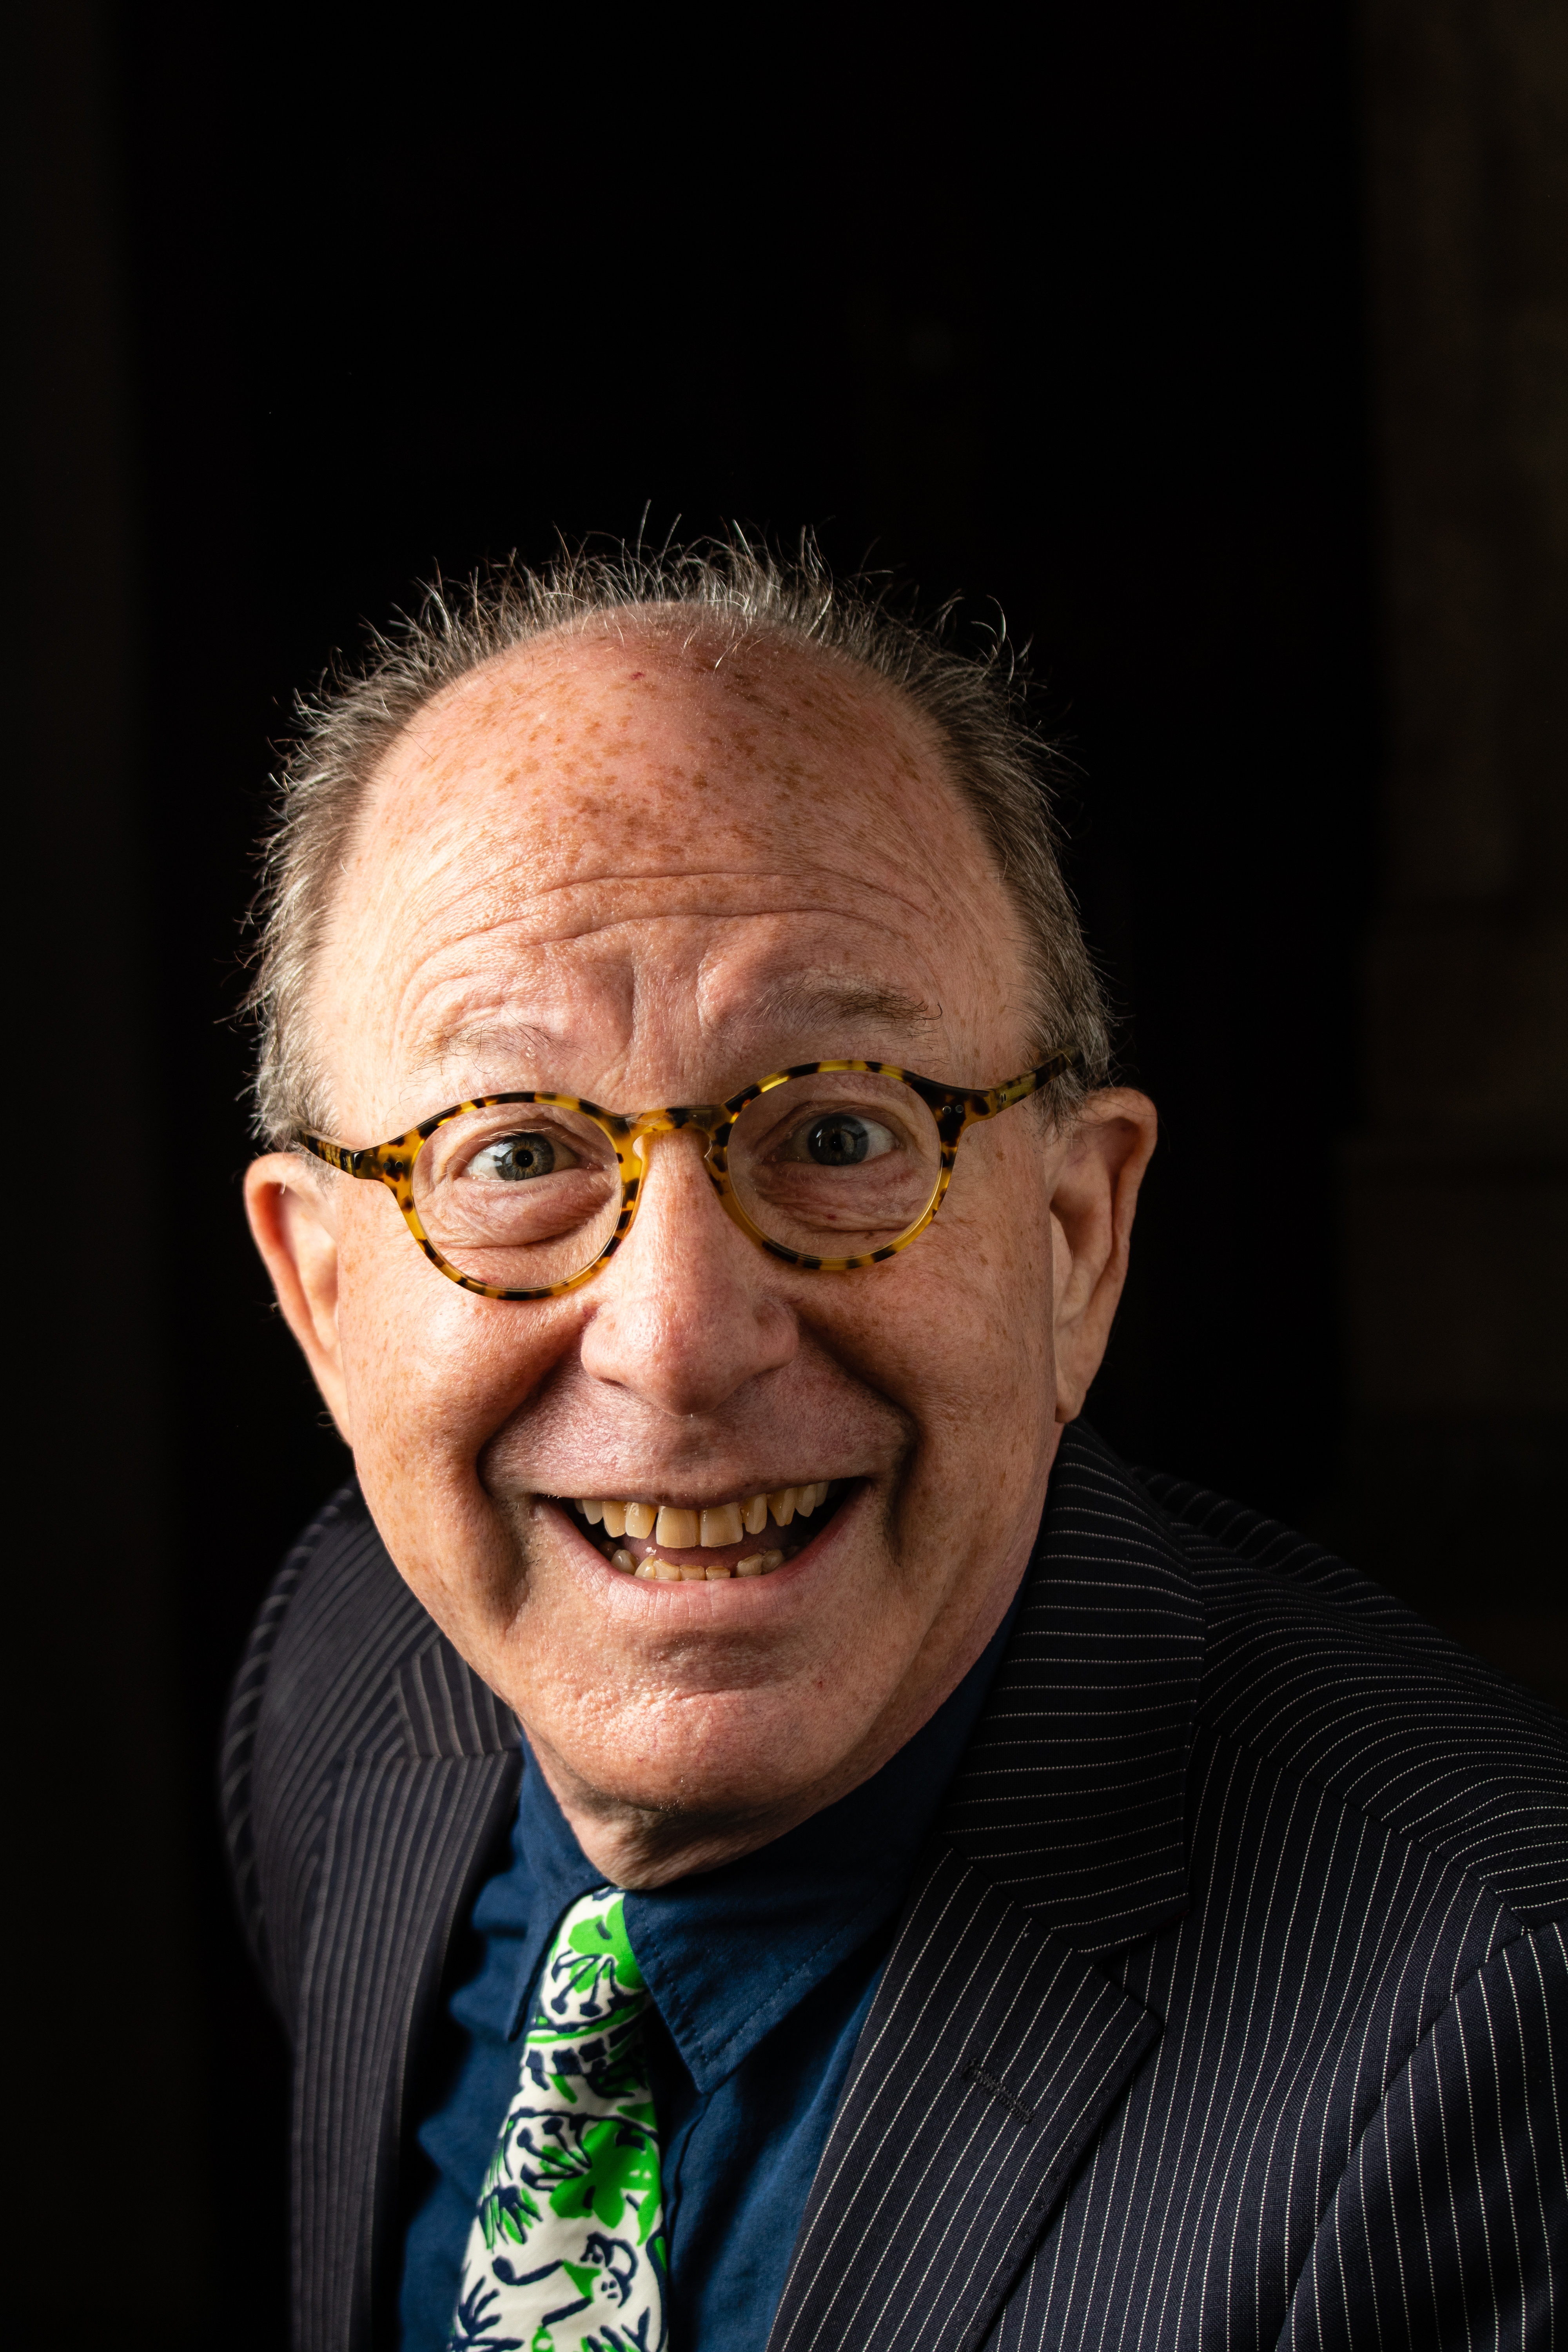 Jerry Saltz (f. 1951). Foto: Fuzheado via Creative Commons.